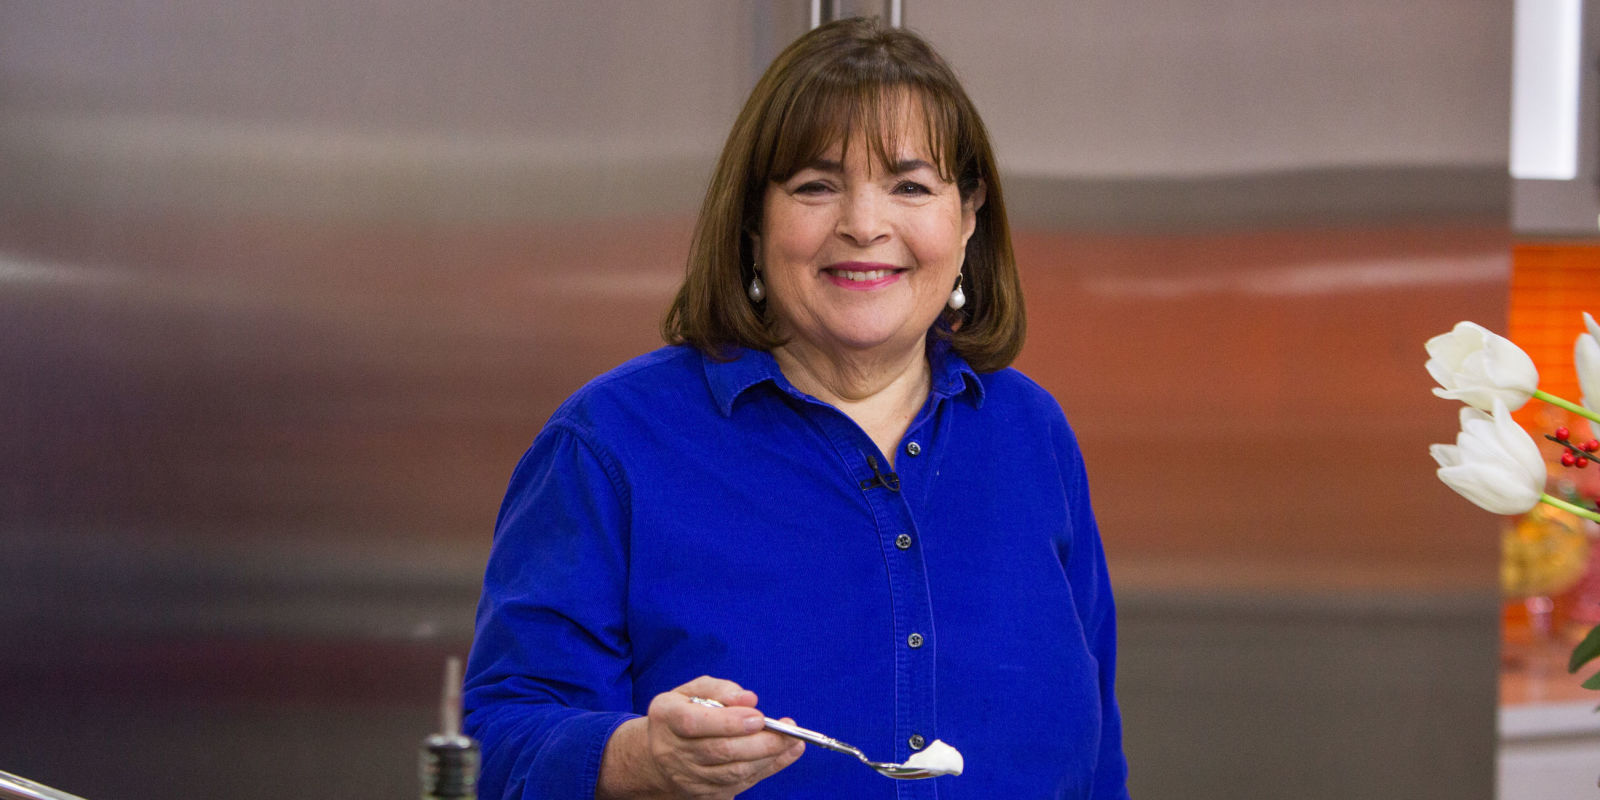 Ina garten 39 s back on tv with new episodes of 39 cook like a pro 39 - Ina garten tv show ...